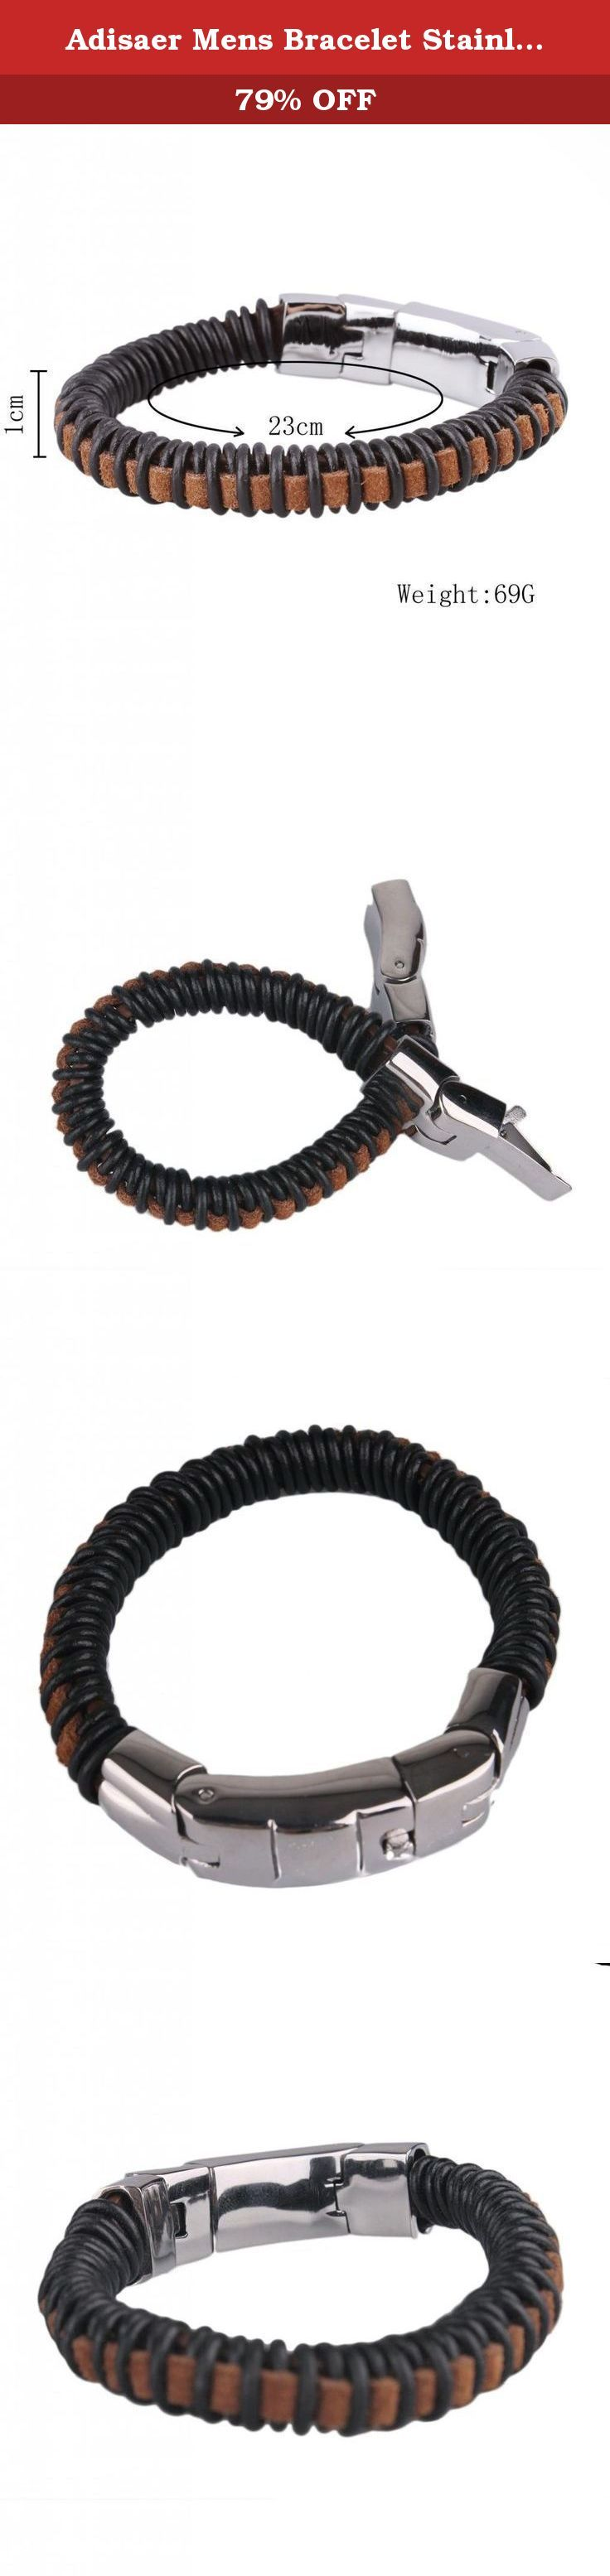 Adisaer Mens Bracelet Stainless Steel Leather Woven Bangle Black Brown Length 23CM Width 1CM. This Leather Jewelry is Hot! Perfect gift for a man. Give it to the loved one, or treat yourself for a trendy bracelet style. The two-tone men's bracelet showcases a modern design and features a soft black leather woven strap accented with a beautiful silver-tone clasp. A box with tongue type of clasp on this bracelet allows to lock the jewelry securely around your wrist. Look and feel great with...